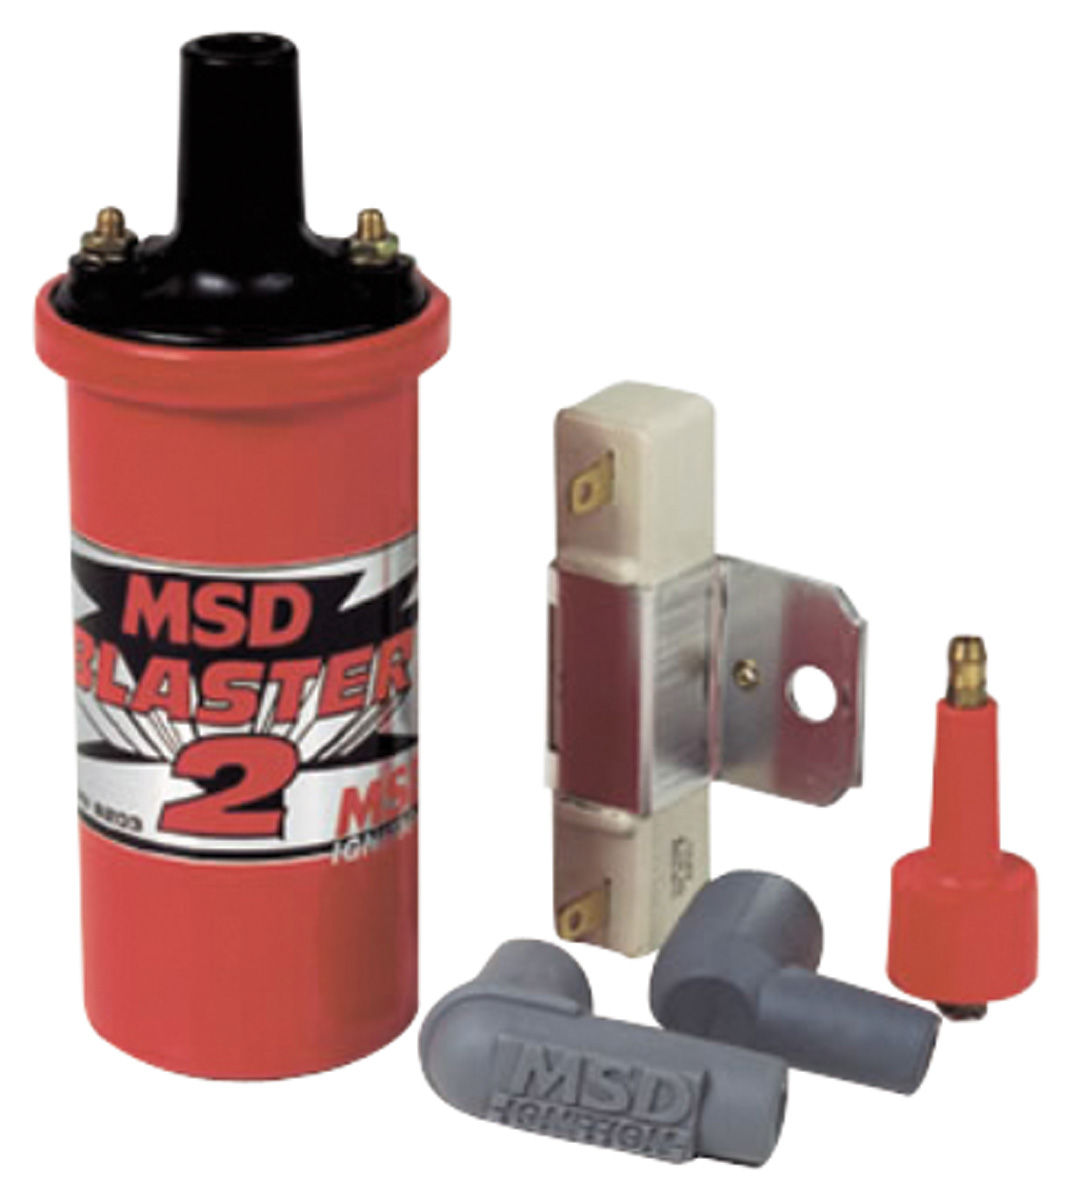 Kit, Coil W/ Ballast and Hardware, MSD, Blaster 2, Red